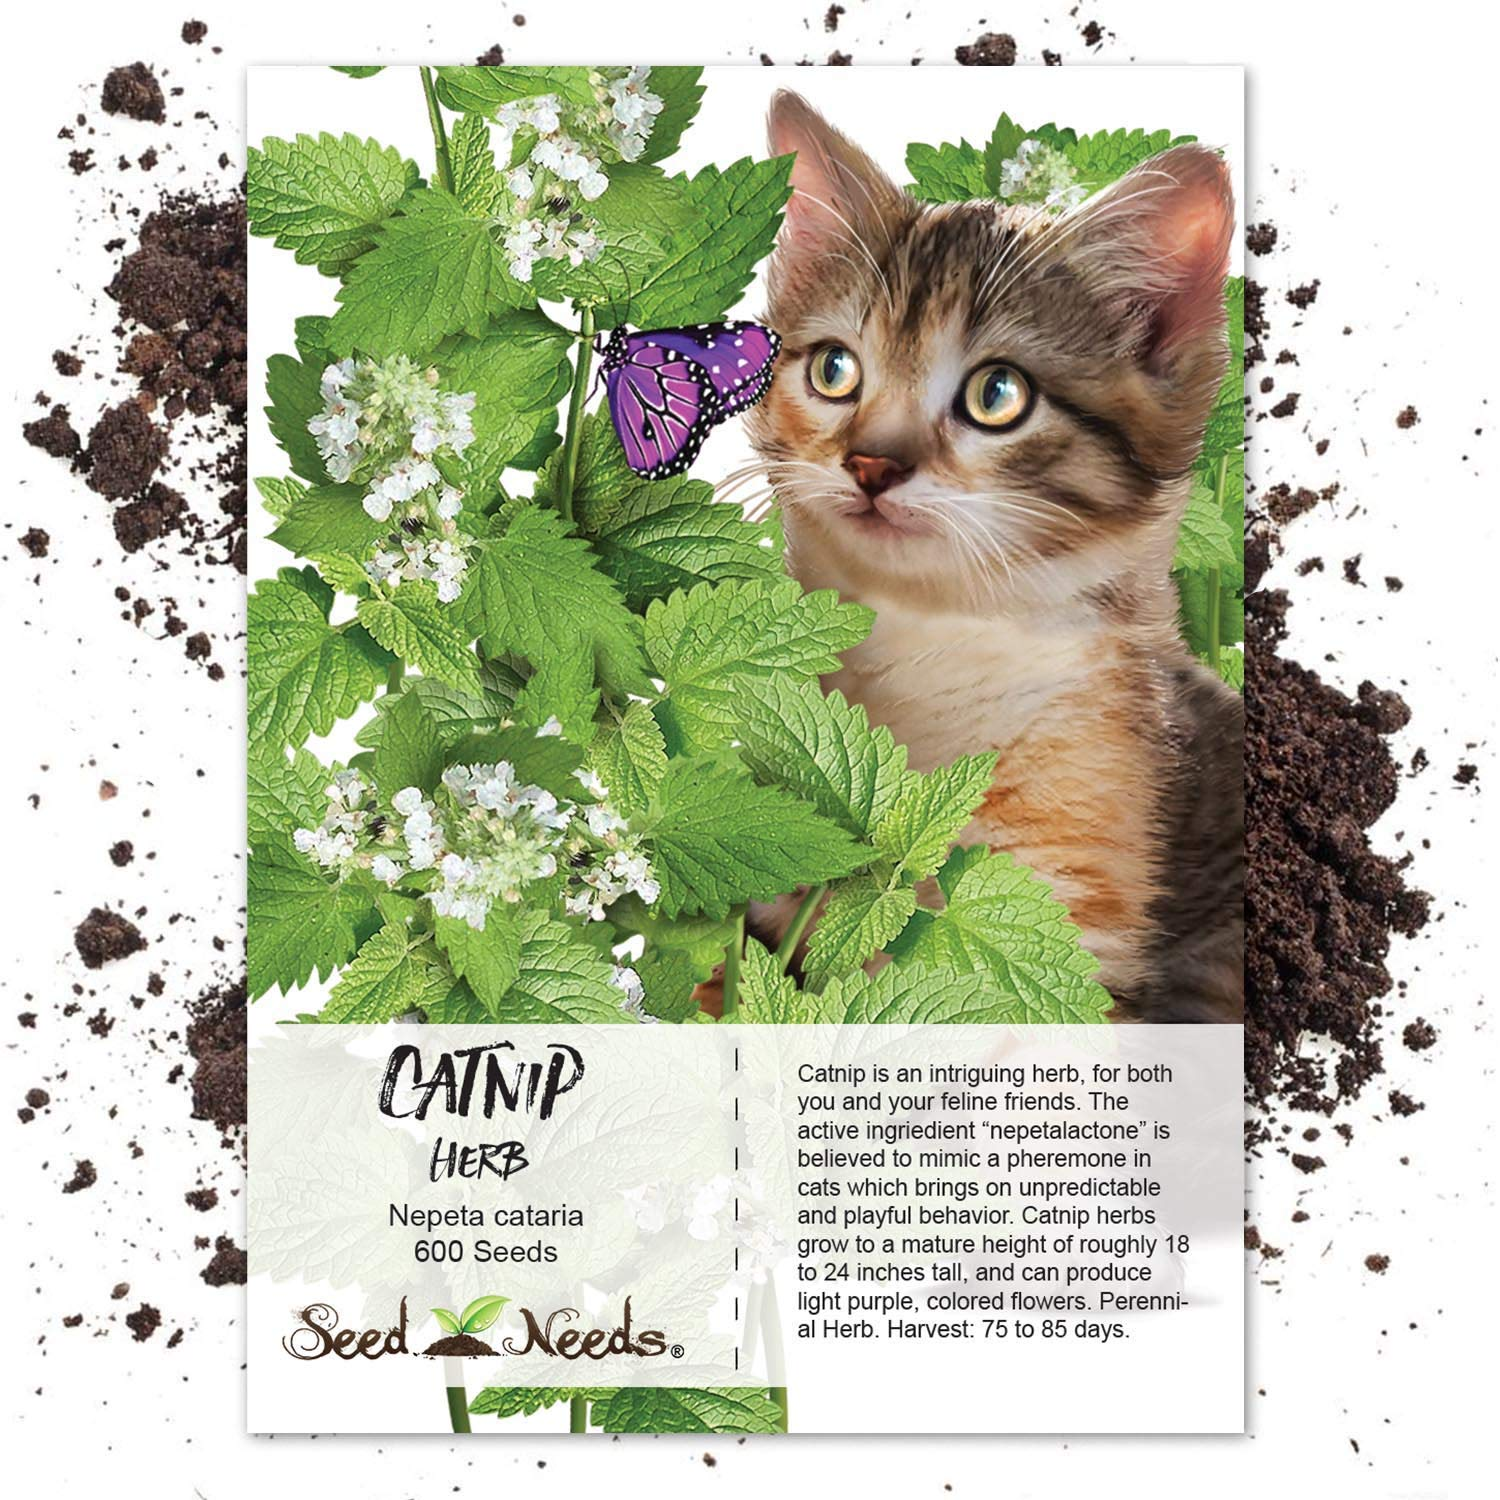 How To Use Catnip Extract